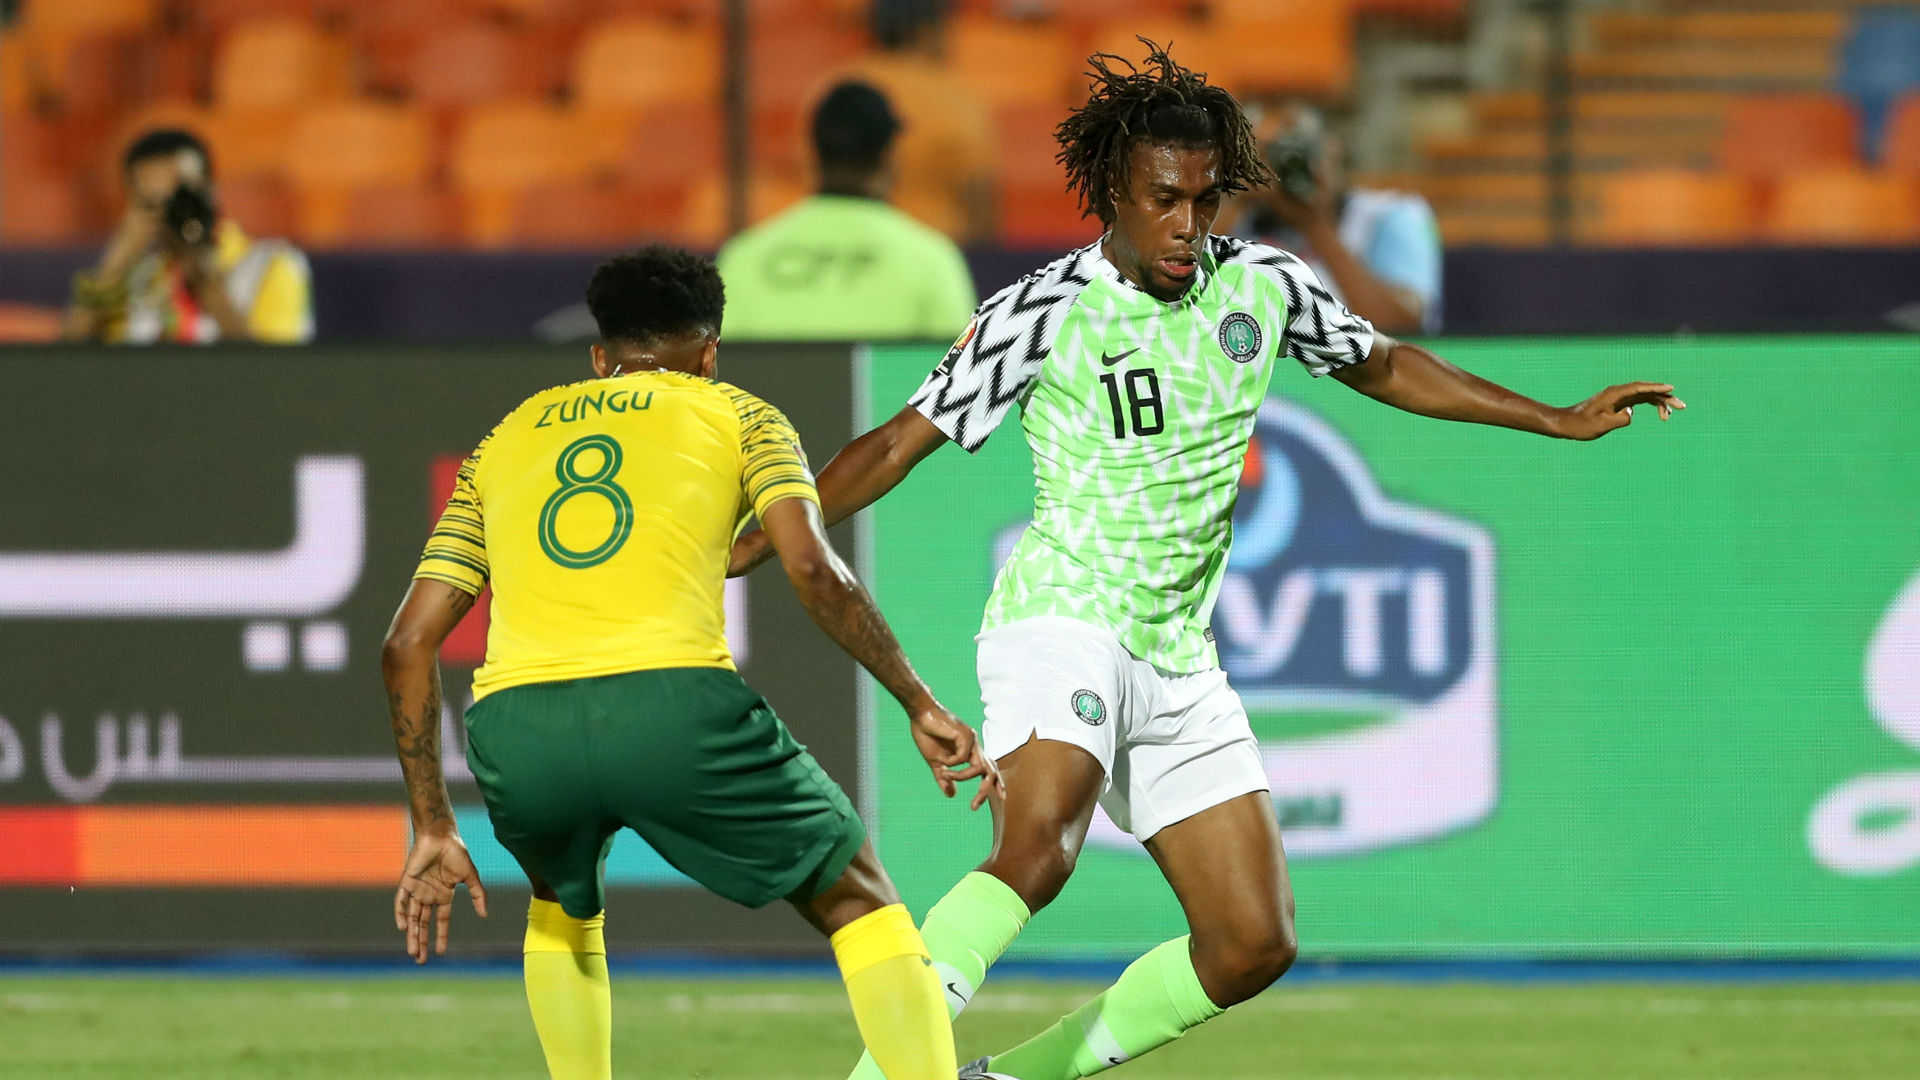 Afcon 2019: Nigeria need to repeat Cameroon and South Africa performances against Algeria - Iwobi